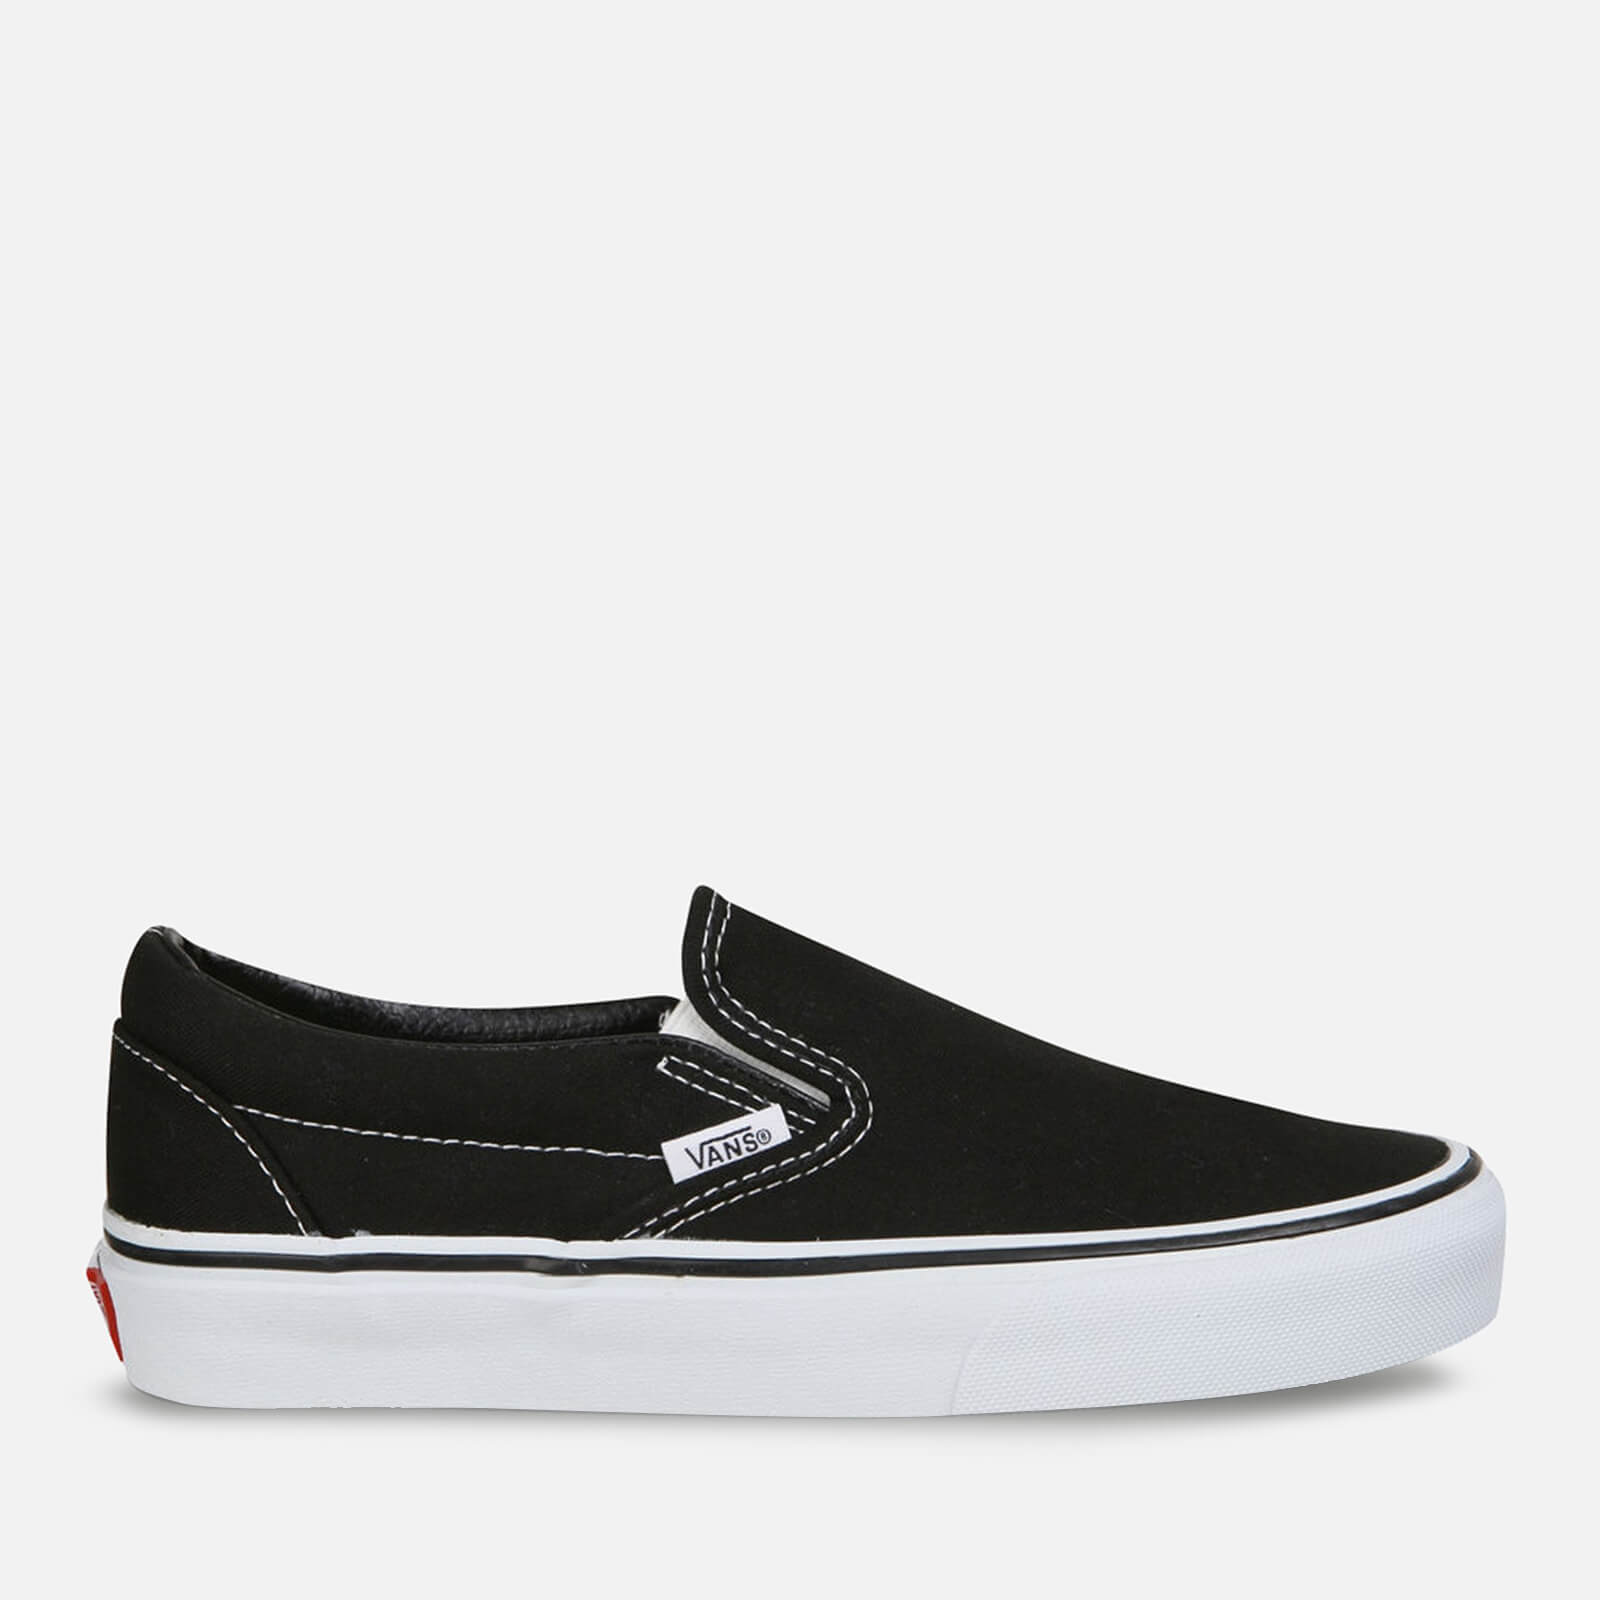 Vans Classic Slip On Trainers Black Uk 8